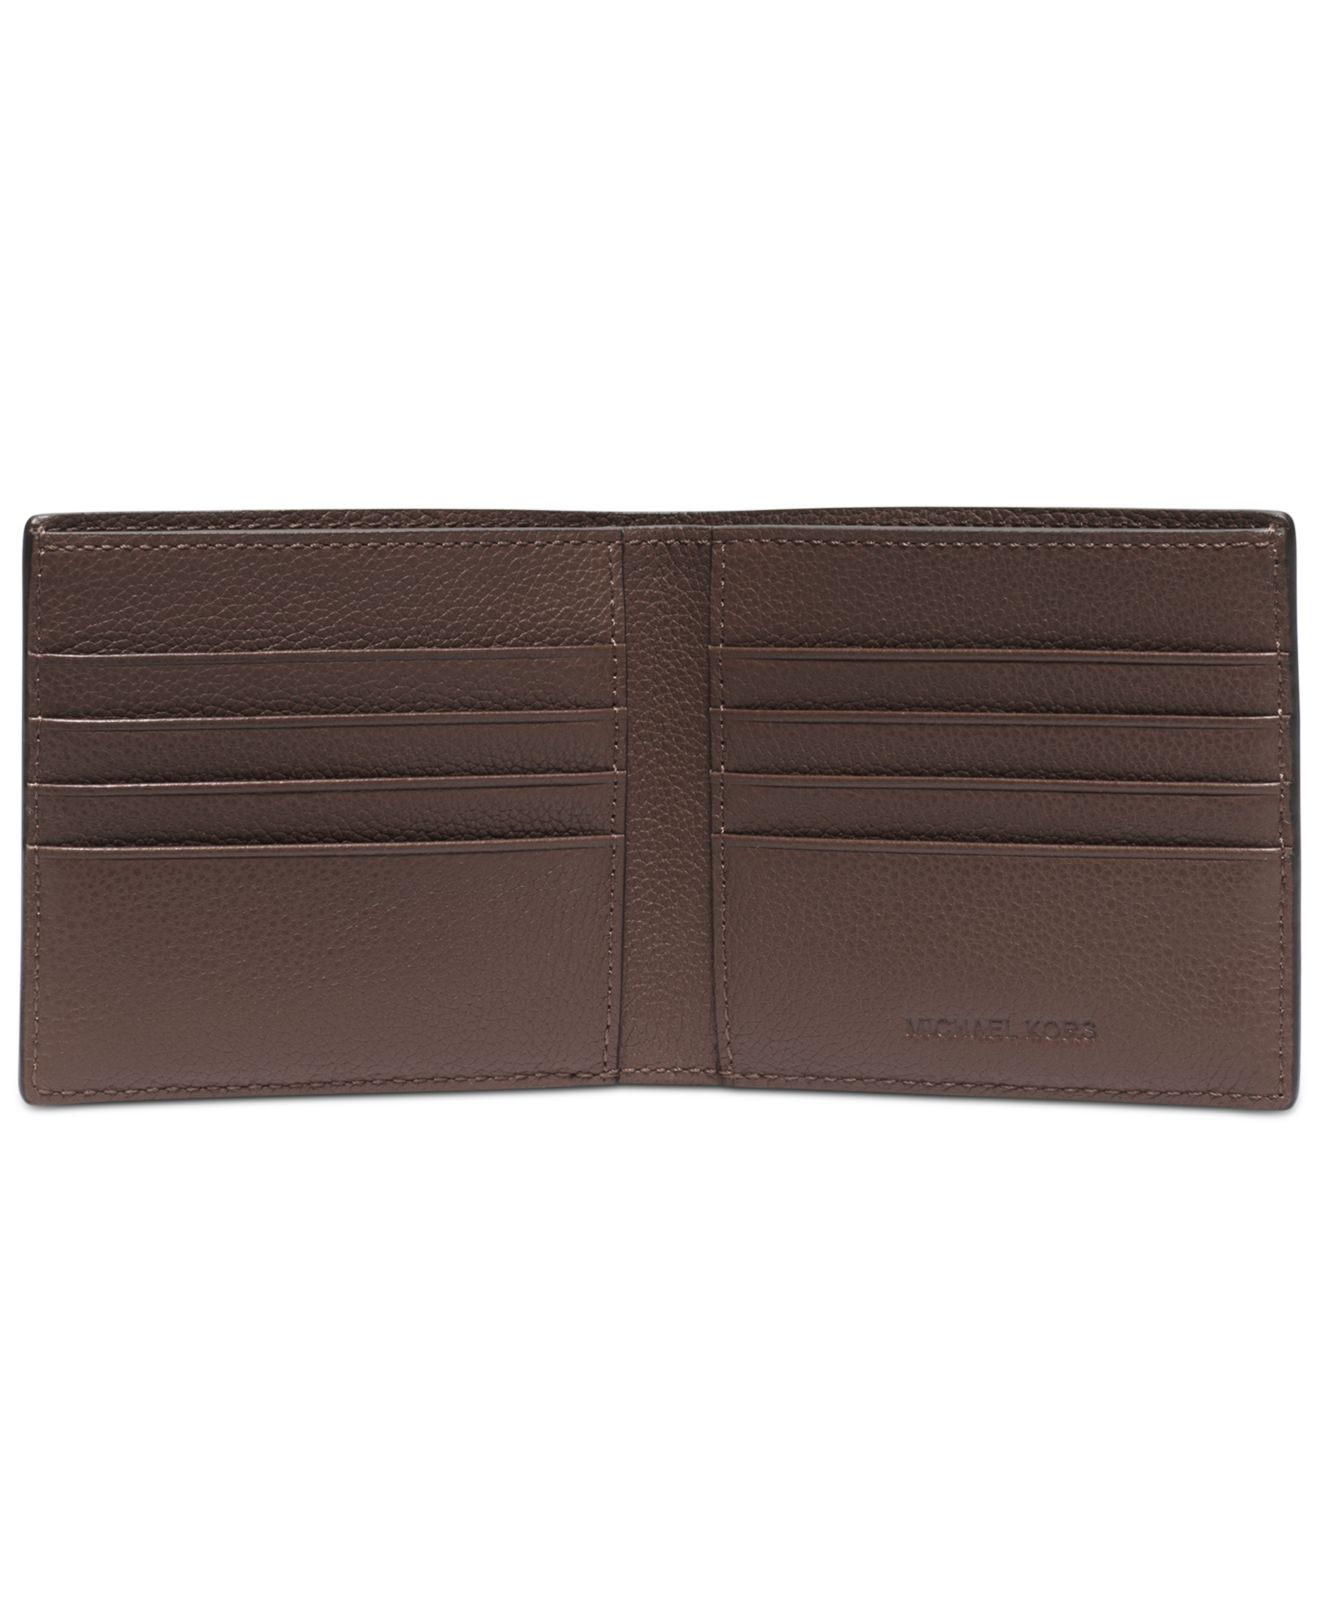 bf1a62f042bdf Lyst - Michael Kors Jet Set Cavallo Pebble Billfold Wallet in Brown ...